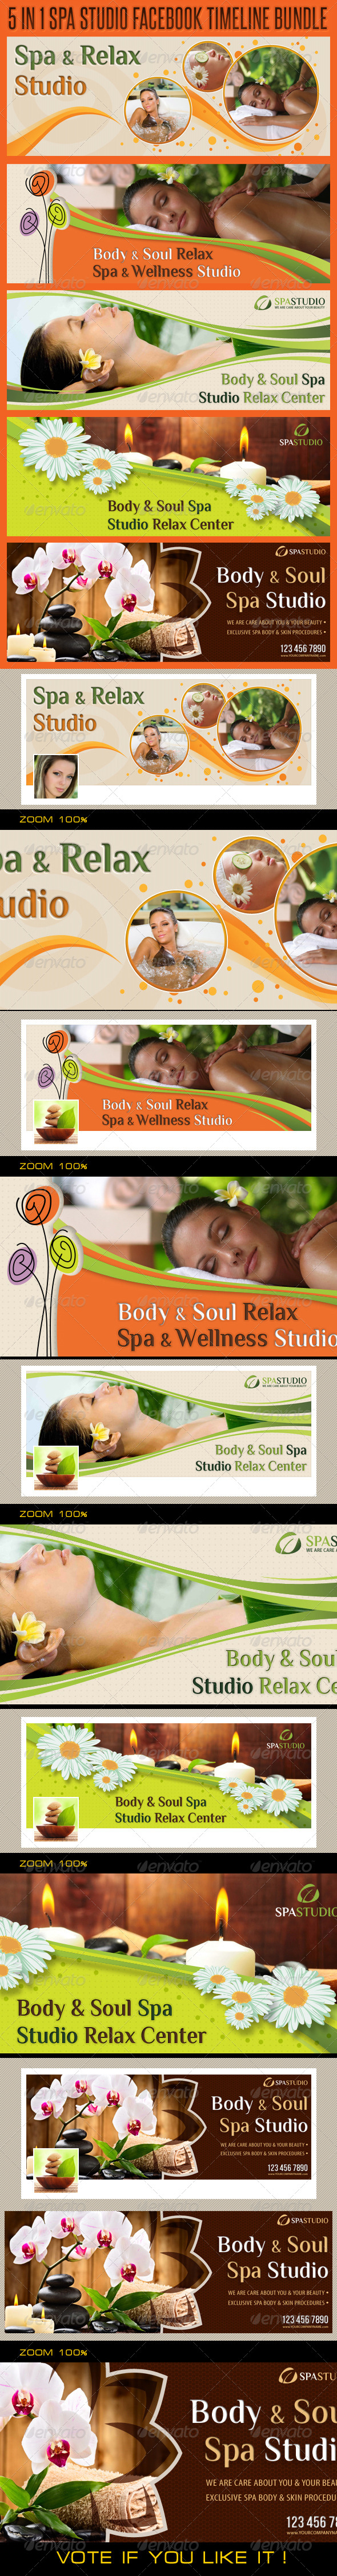 GraphicRiver 5 in 1 Spa Studio Facebook Timeline Bundle 5779876